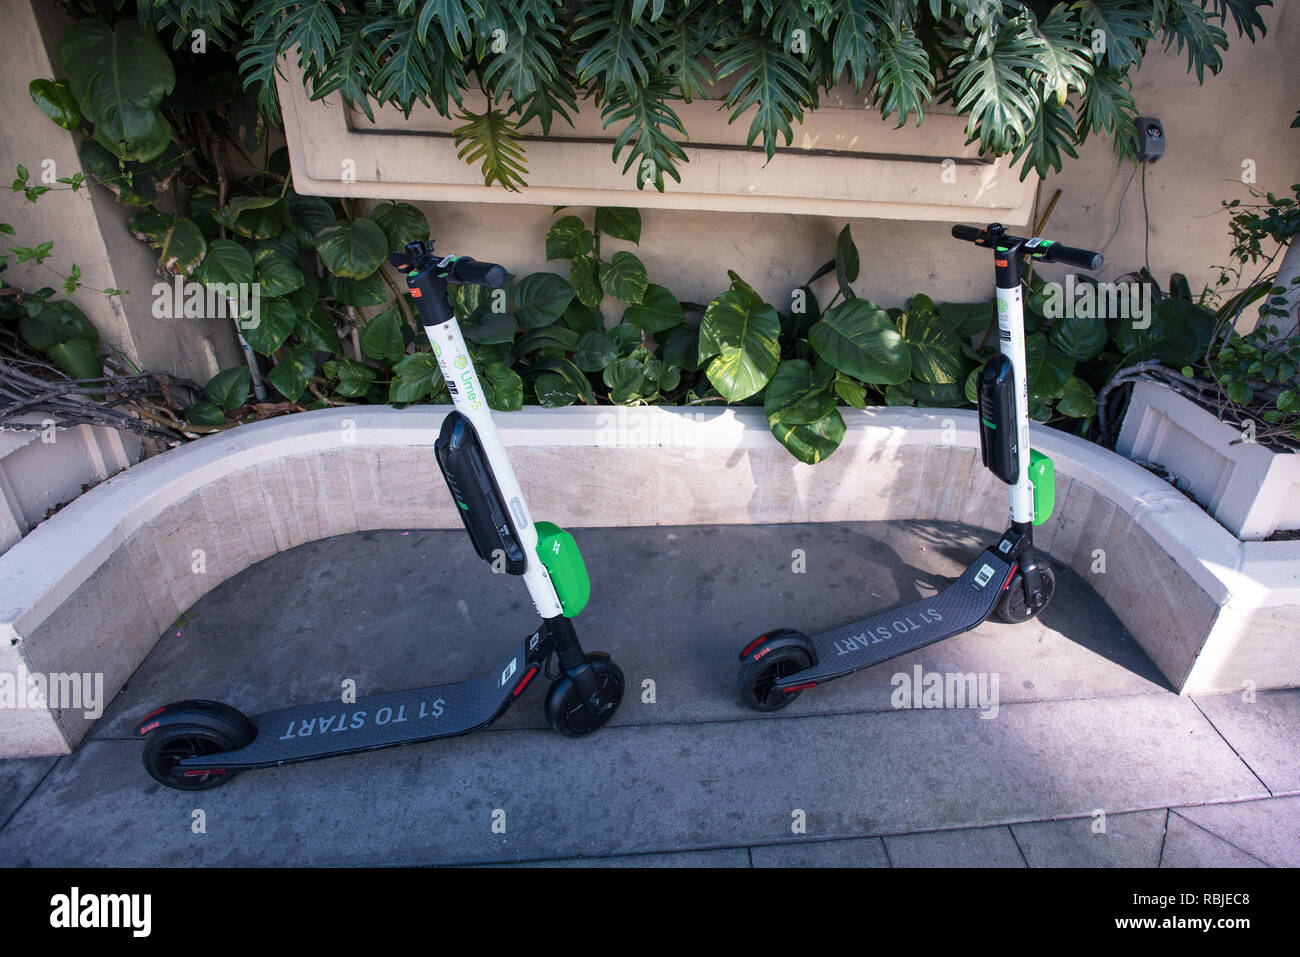 scooter Rental' Stock Photos & 'scooter Rental' Stock Images - Alamy